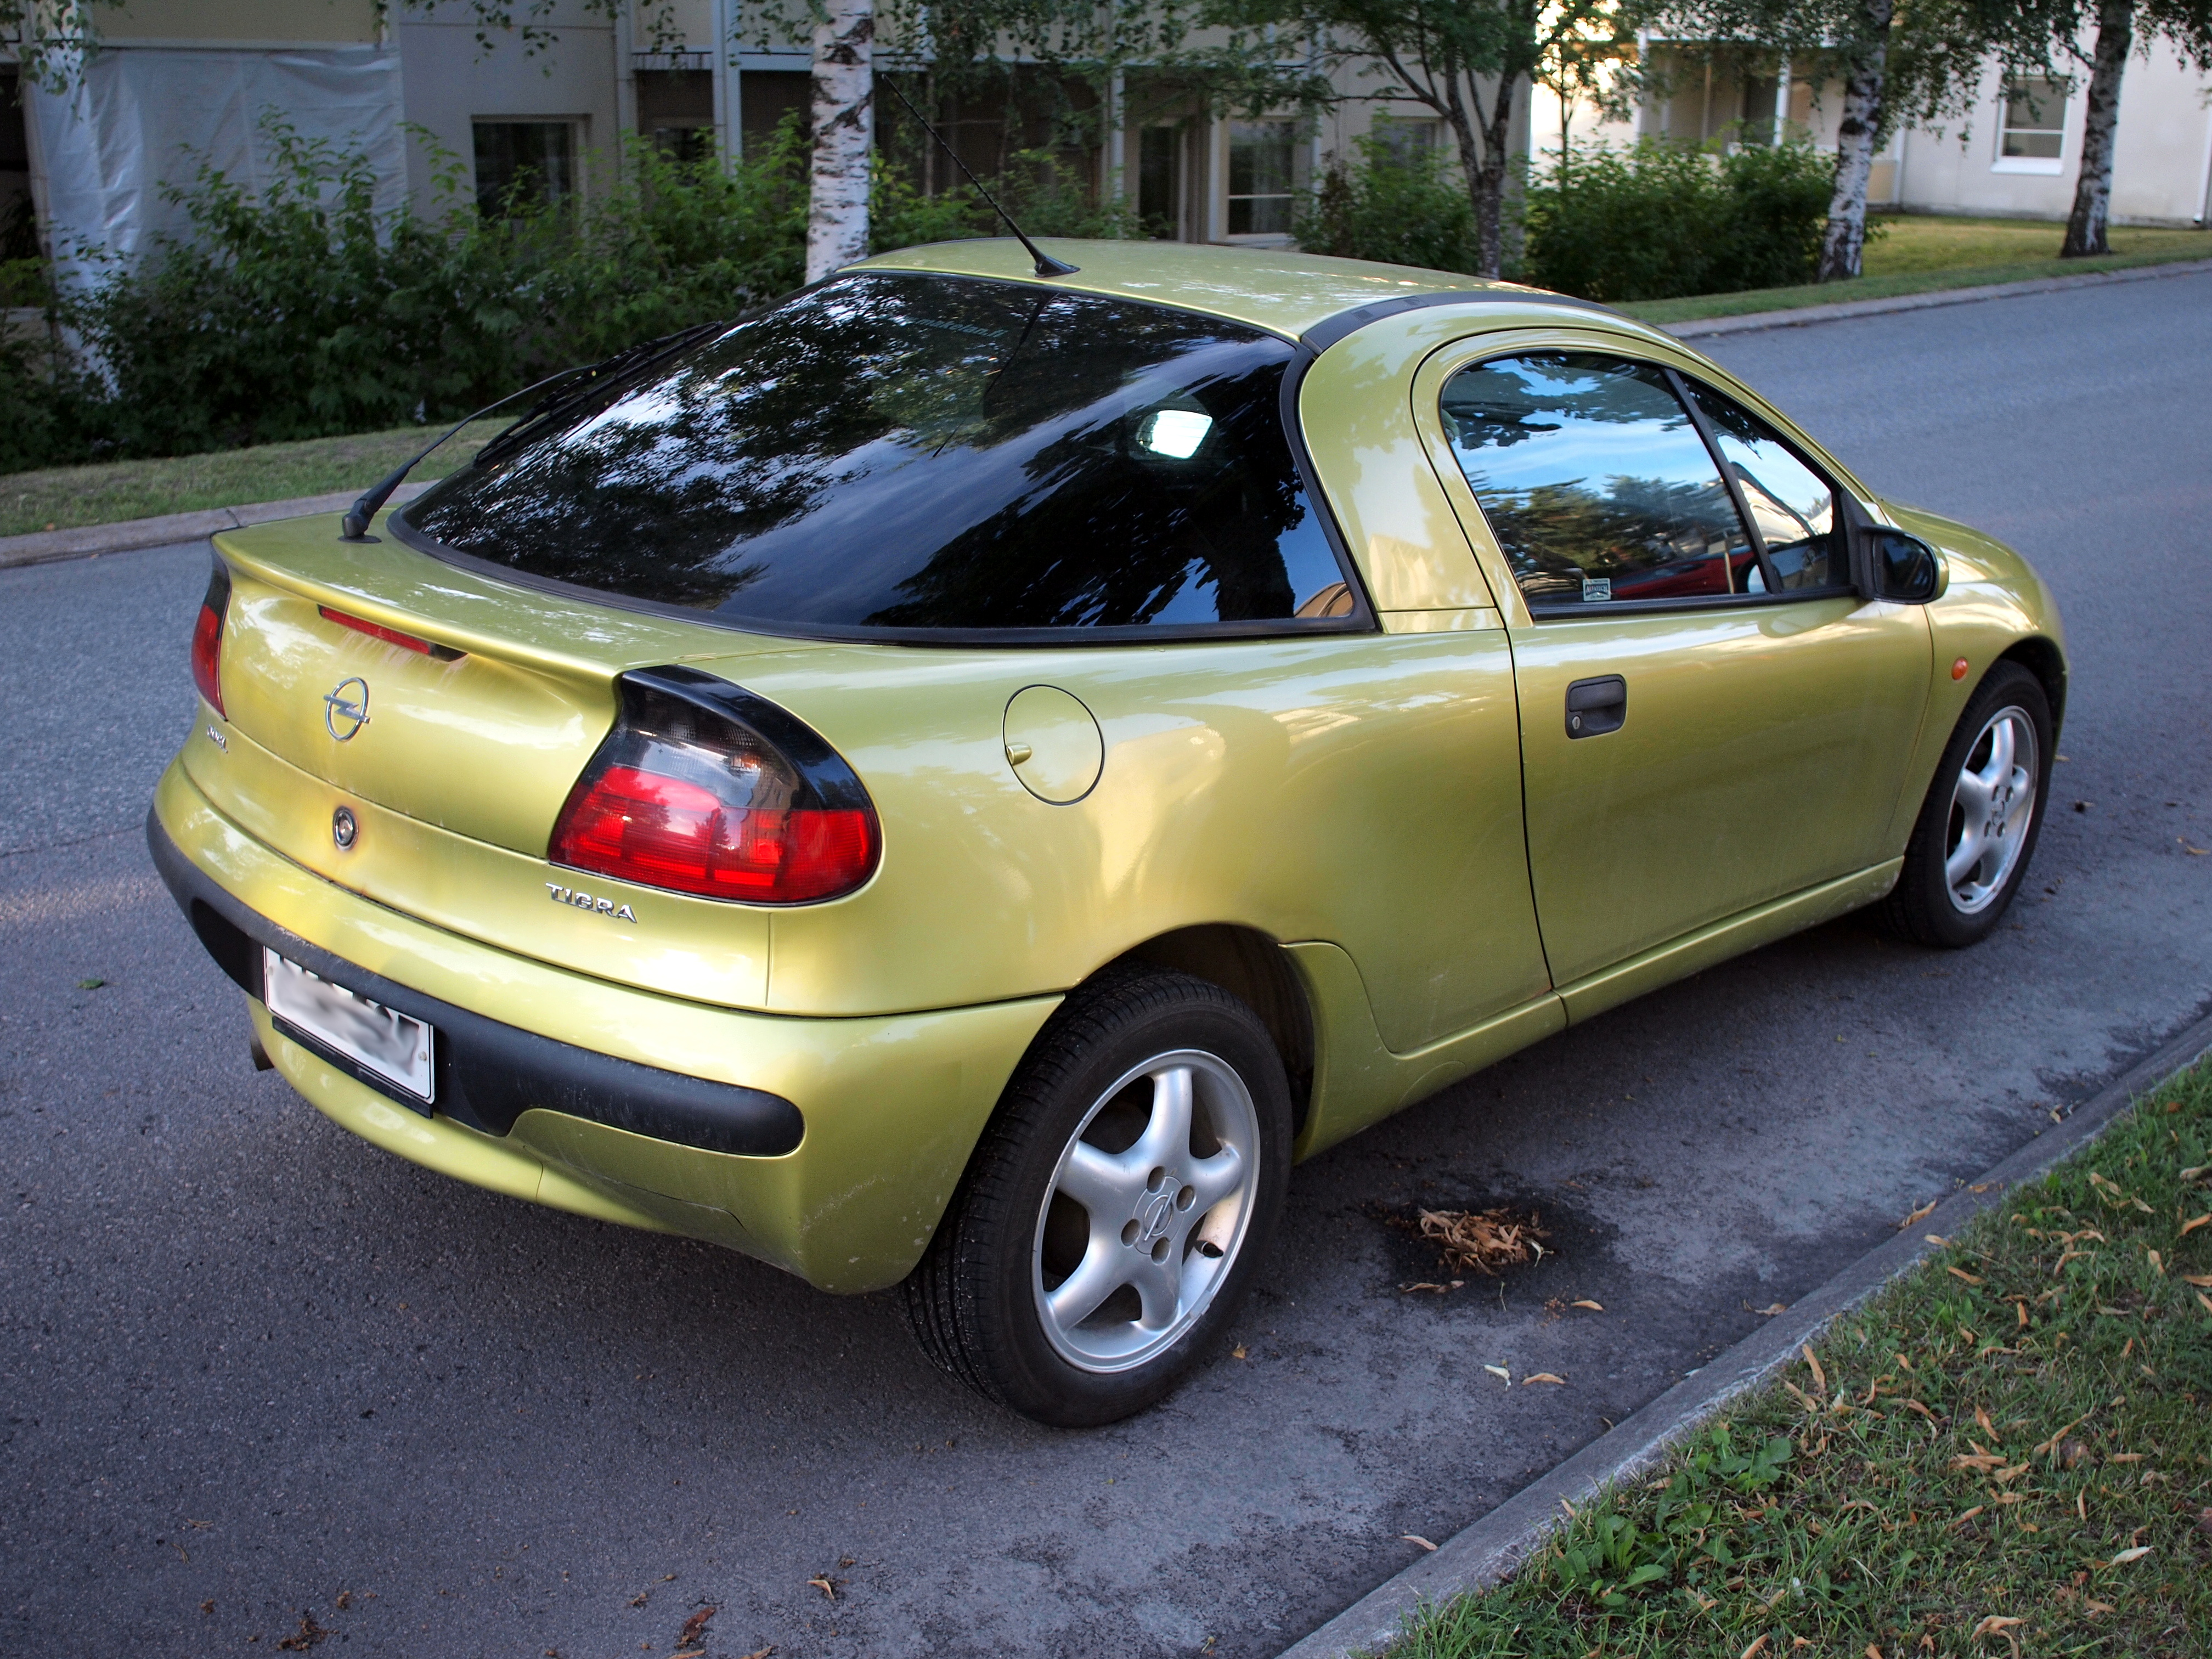 file green yellow opel tigra 01 jpg wikimedia commons. Black Bedroom Furniture Sets. Home Design Ideas